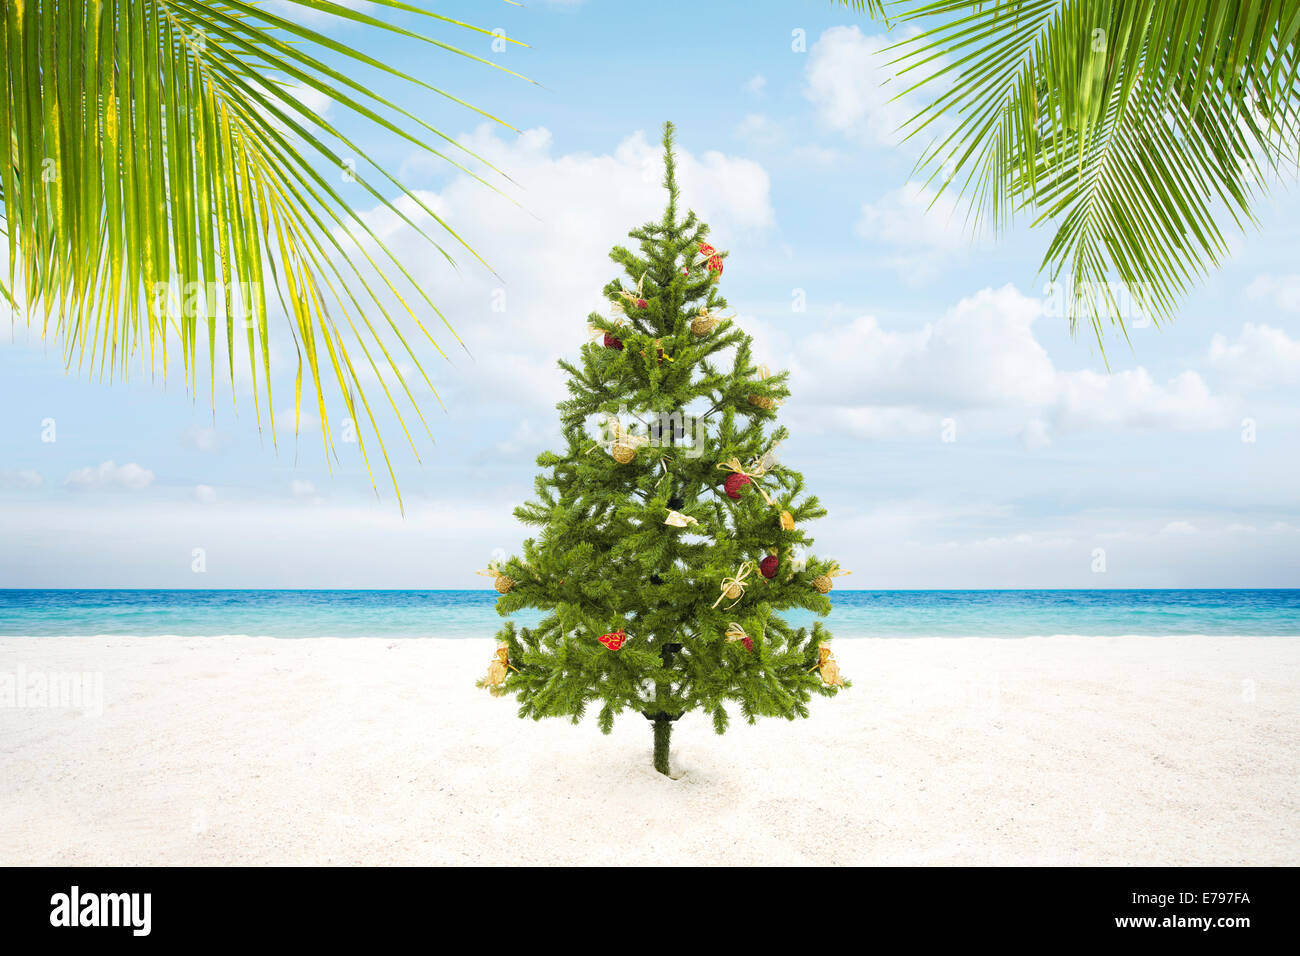 Christmas Palm Tree Stock Photos & Christmas Palm Tree Stock Images ...